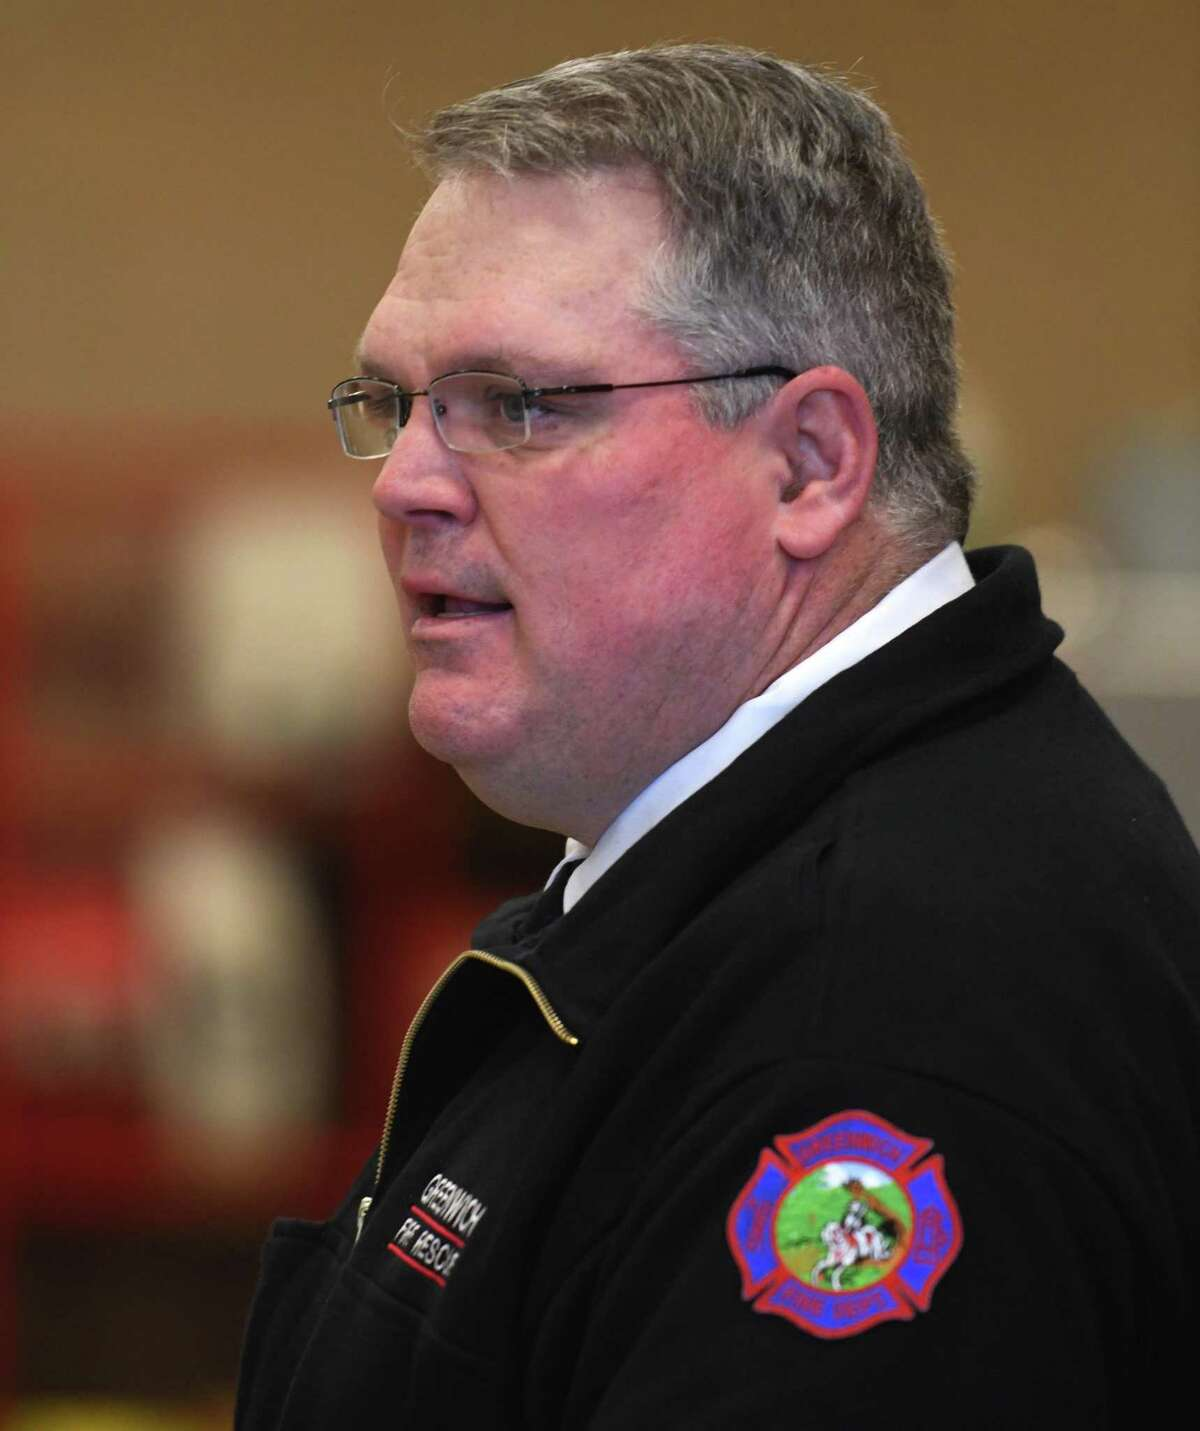 Greenwich Fire Chief Joseph McHugh presented the results of an internal departmental review to the Board of Selectmen on Thursday.